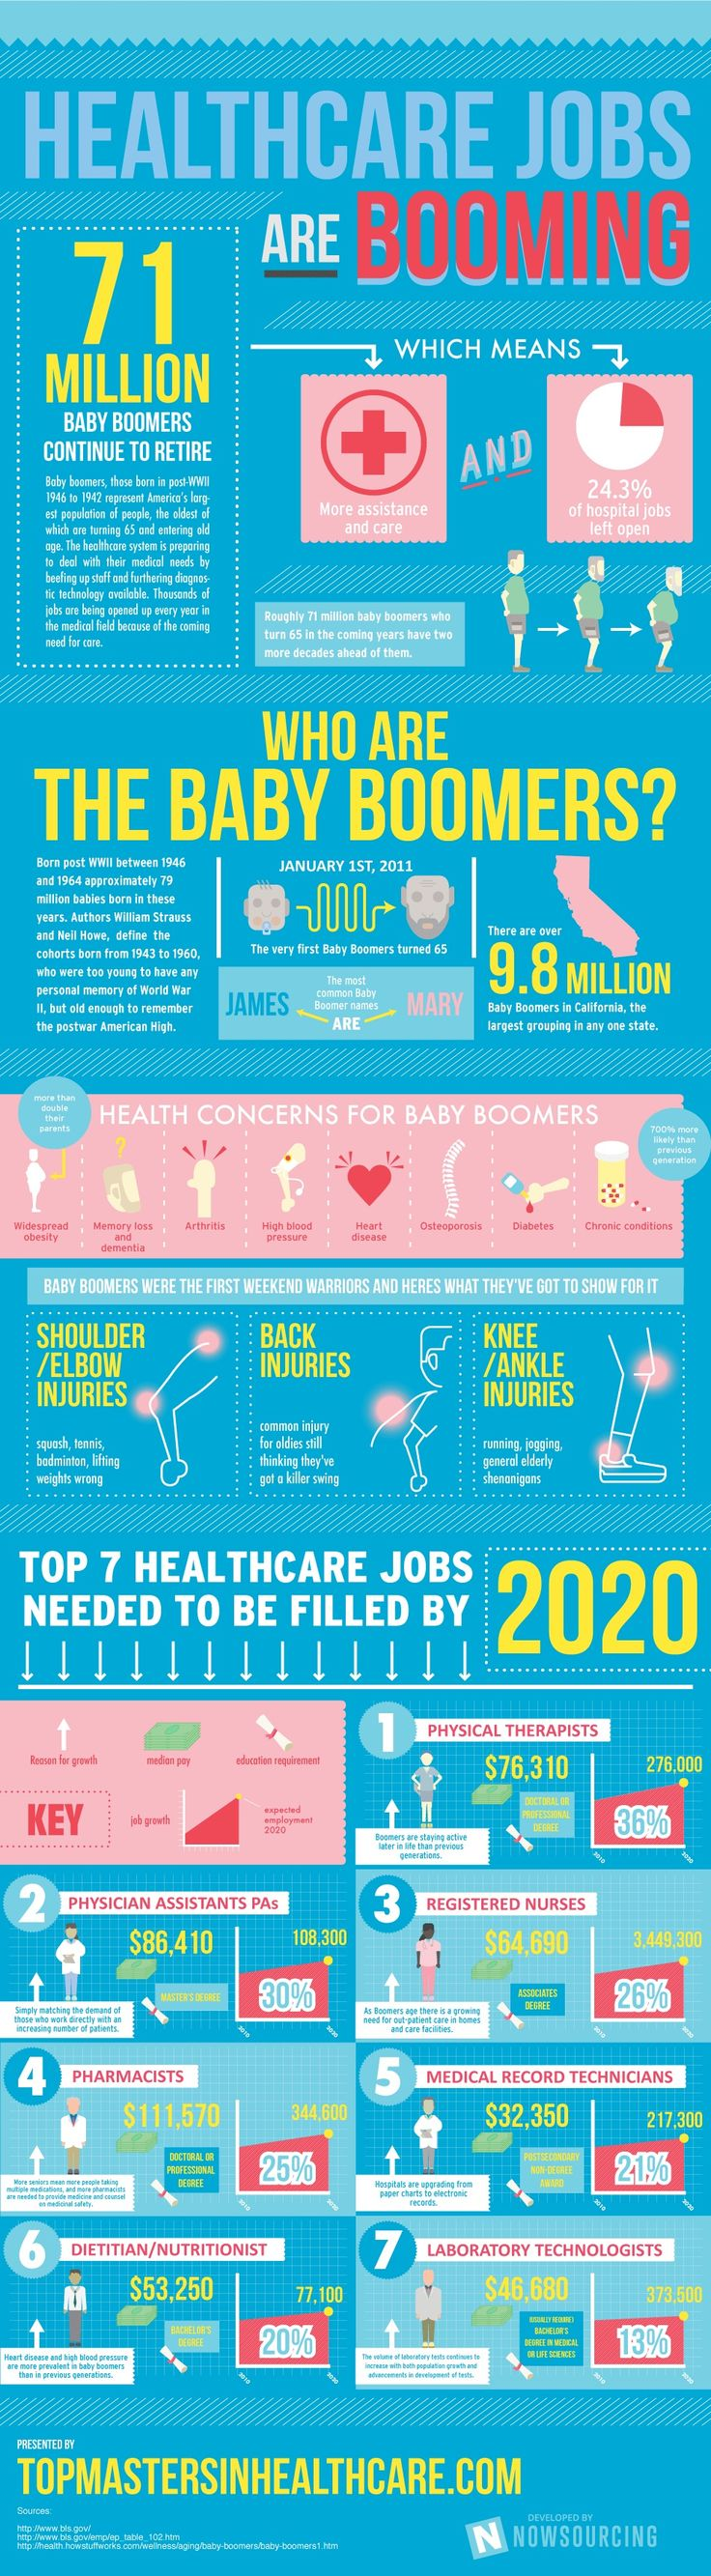 Health Care Jobs Are Booming [infographic]